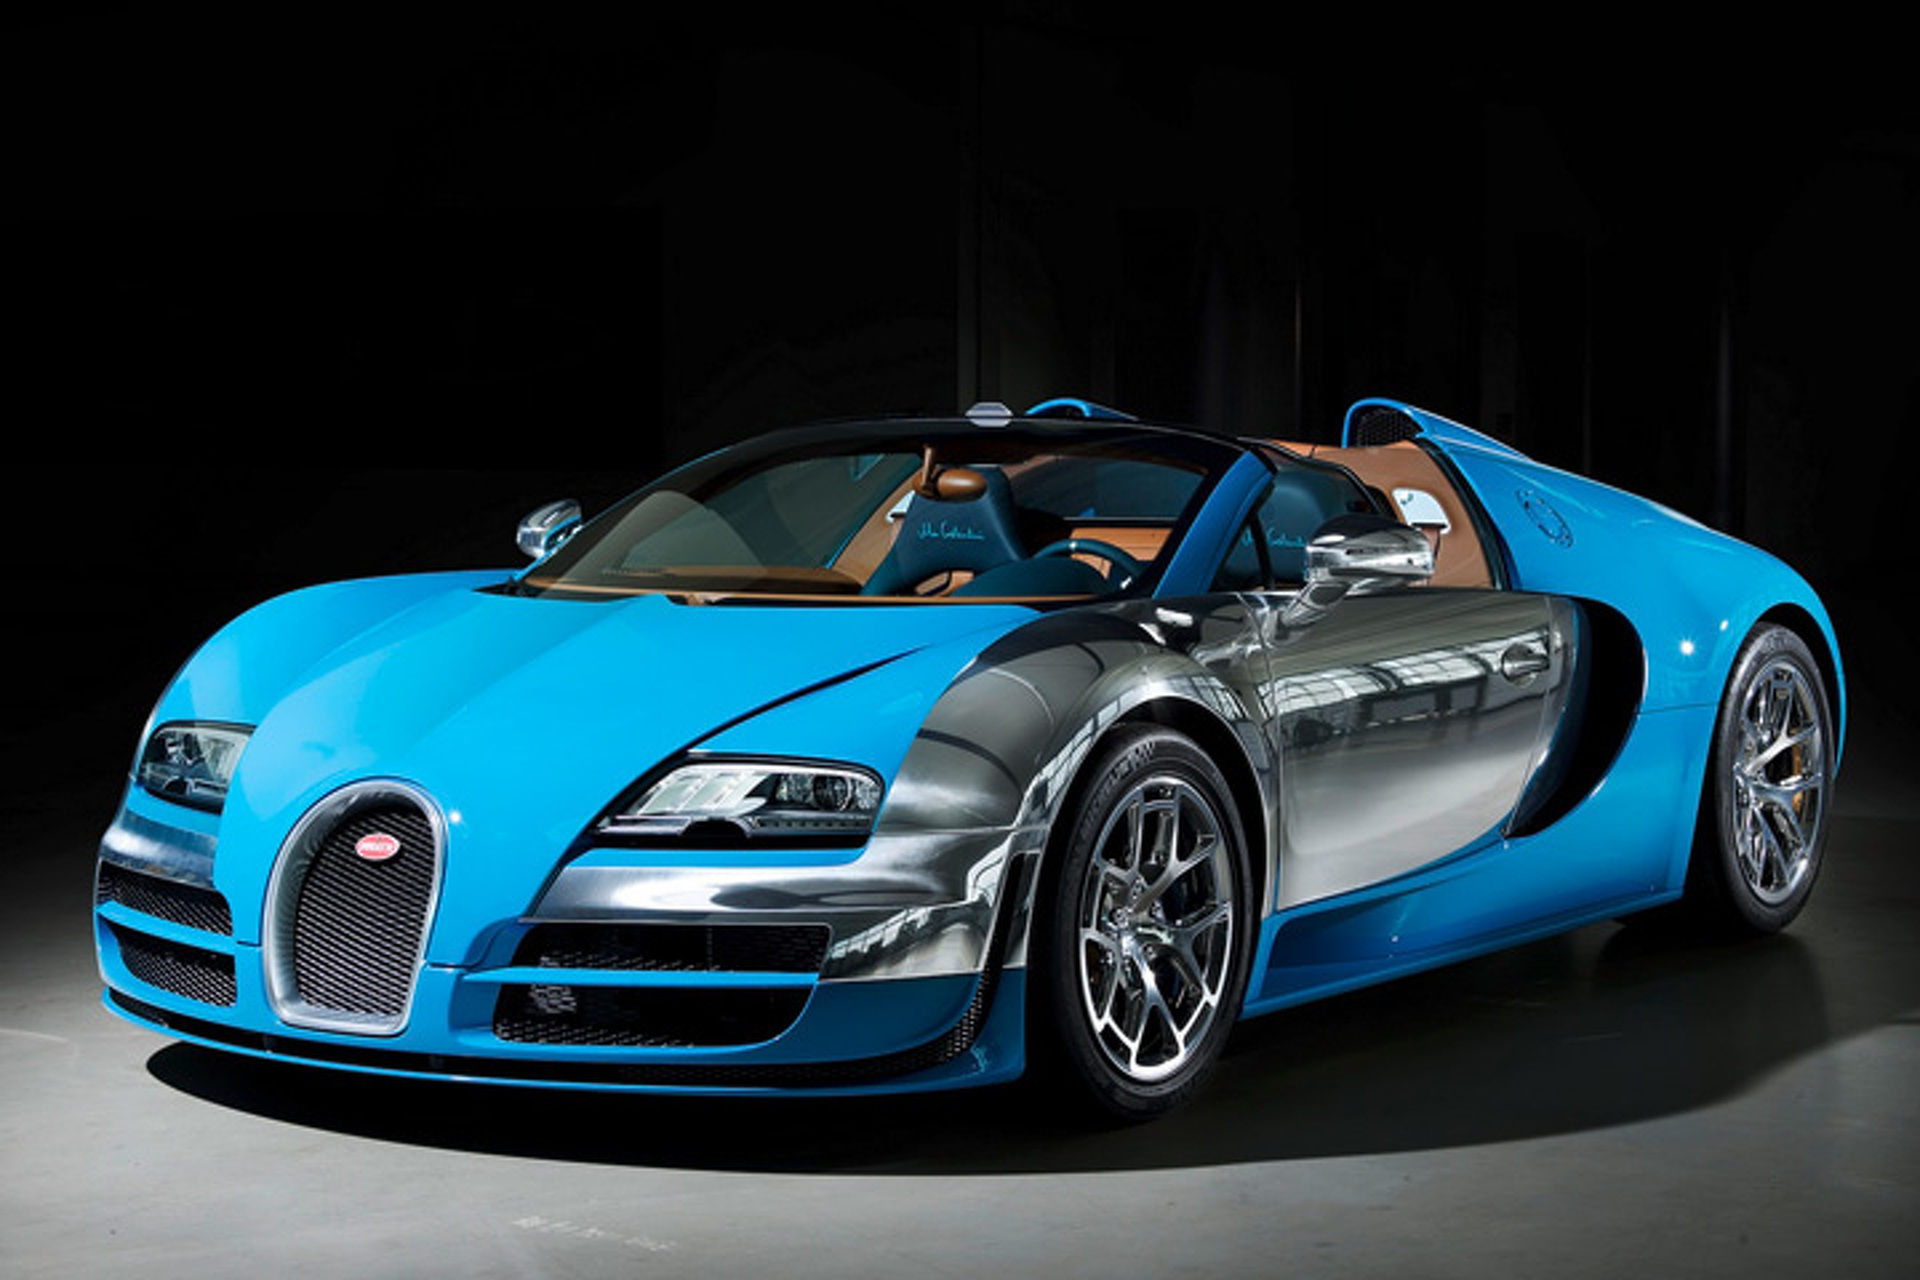 Rare 1-of-3 Bugatti Veyron Meo Costantini Surfaces in Dubai